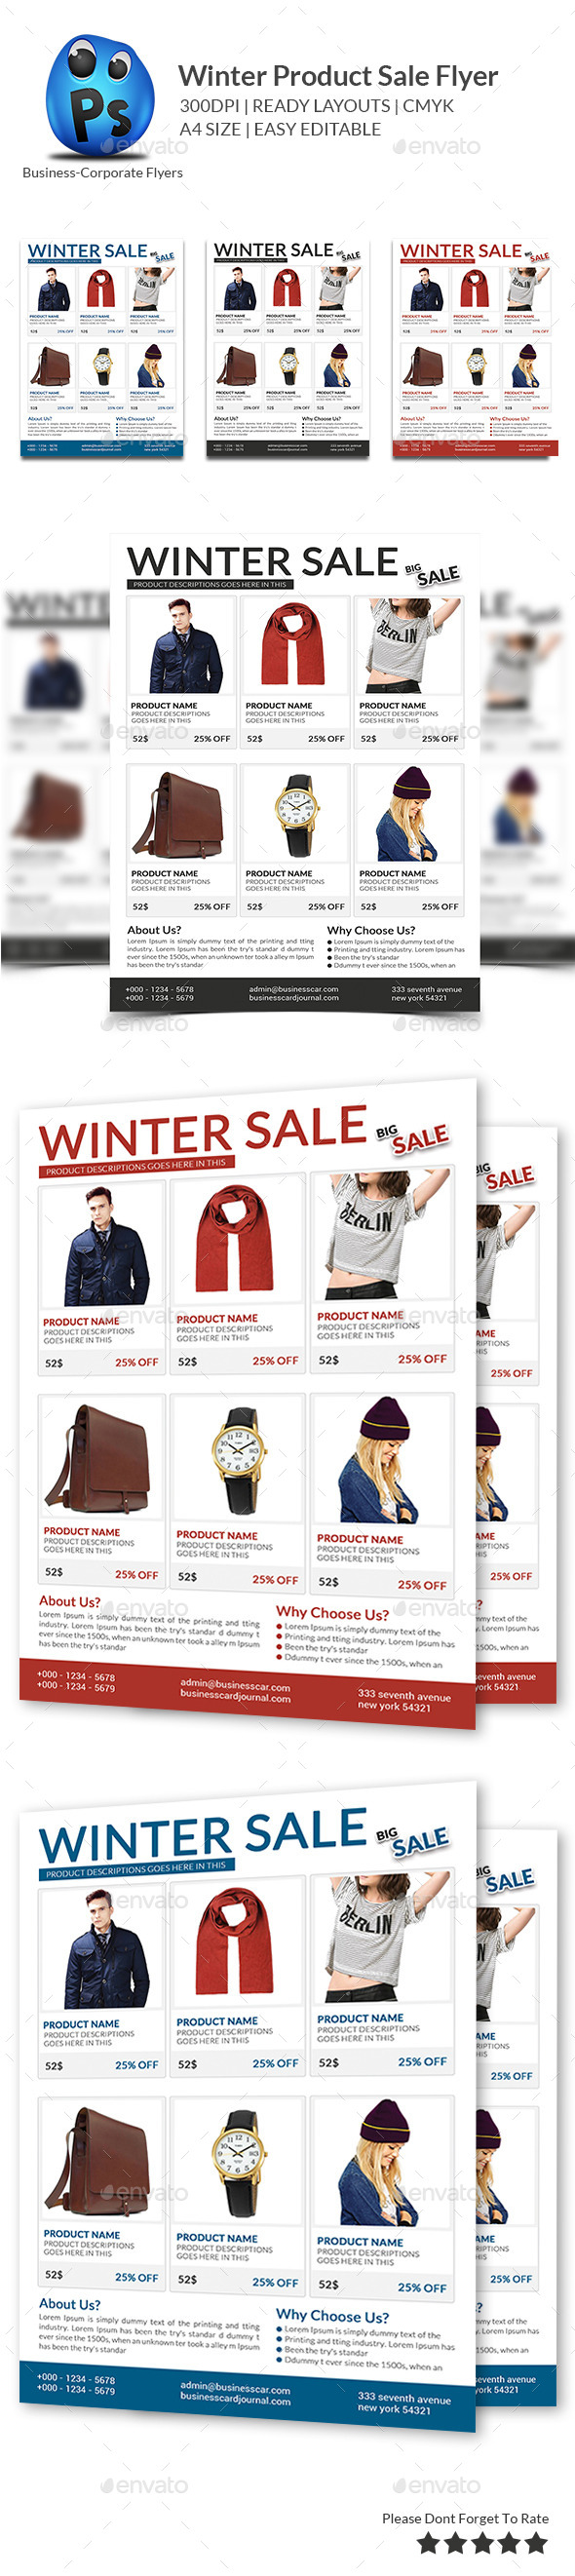 Winter Product Sale Flyer - Flyers Print Templates